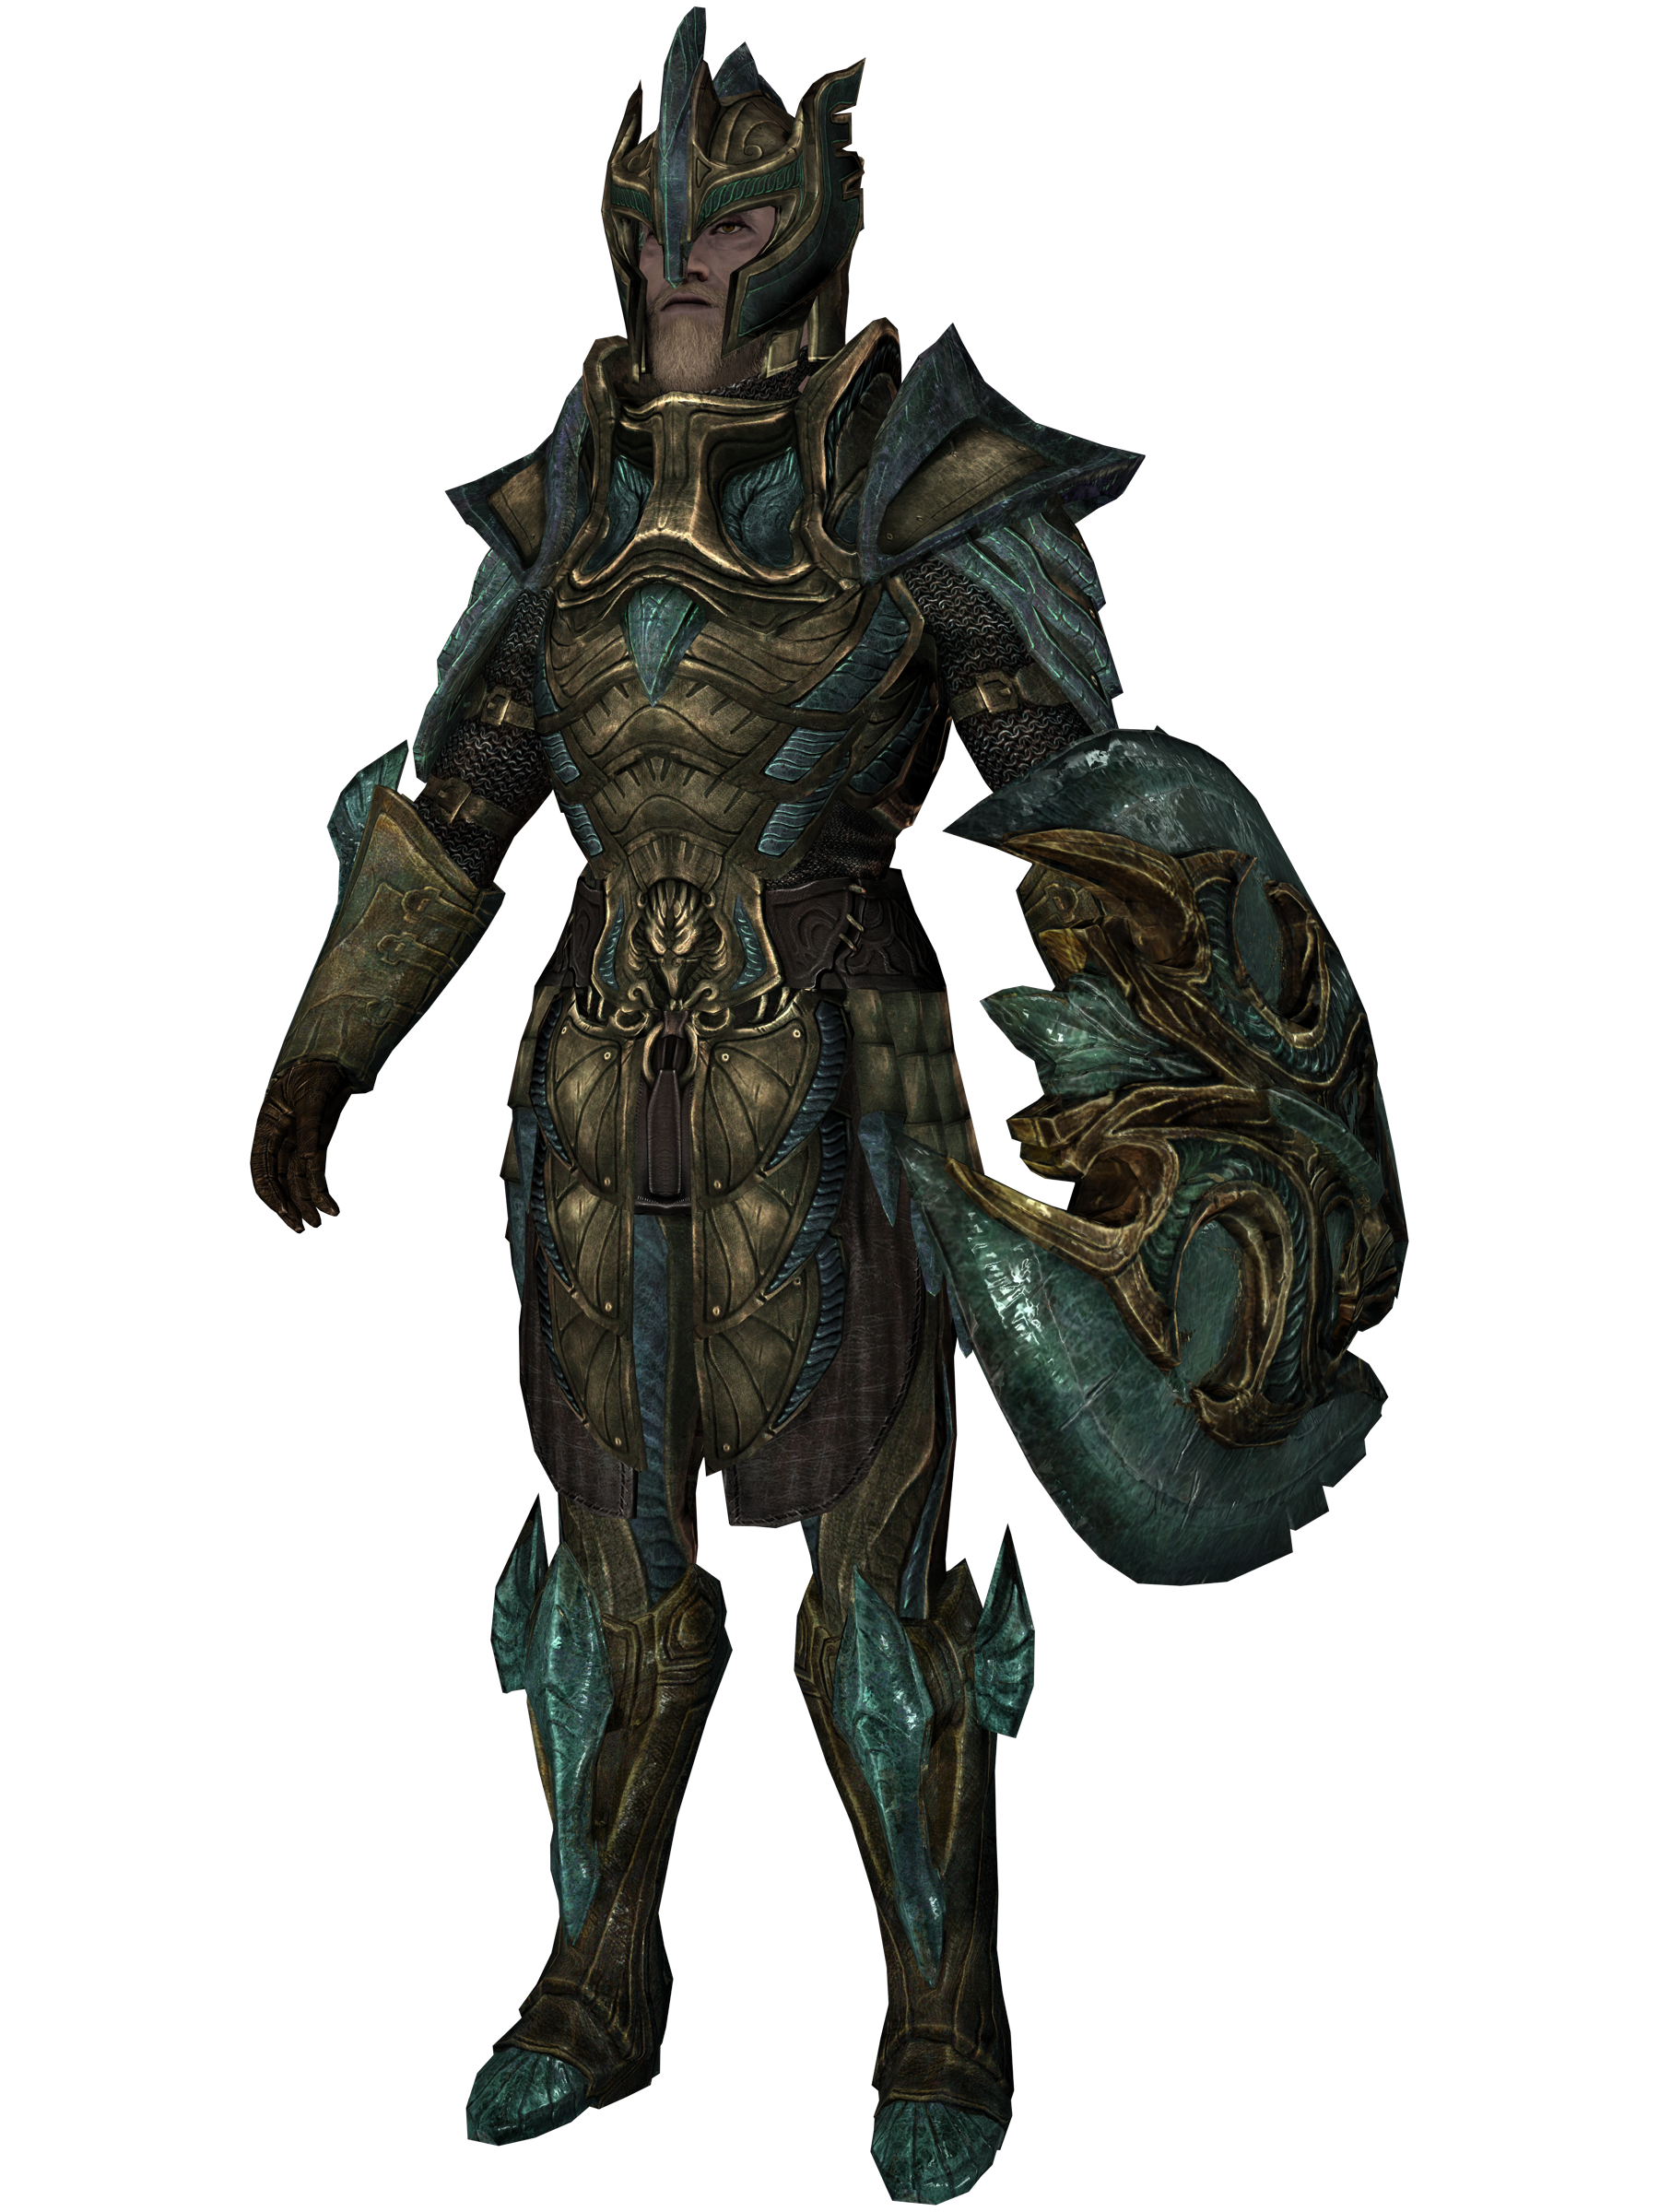 Image glass armor male. Skyrim character png svg royalty free stock